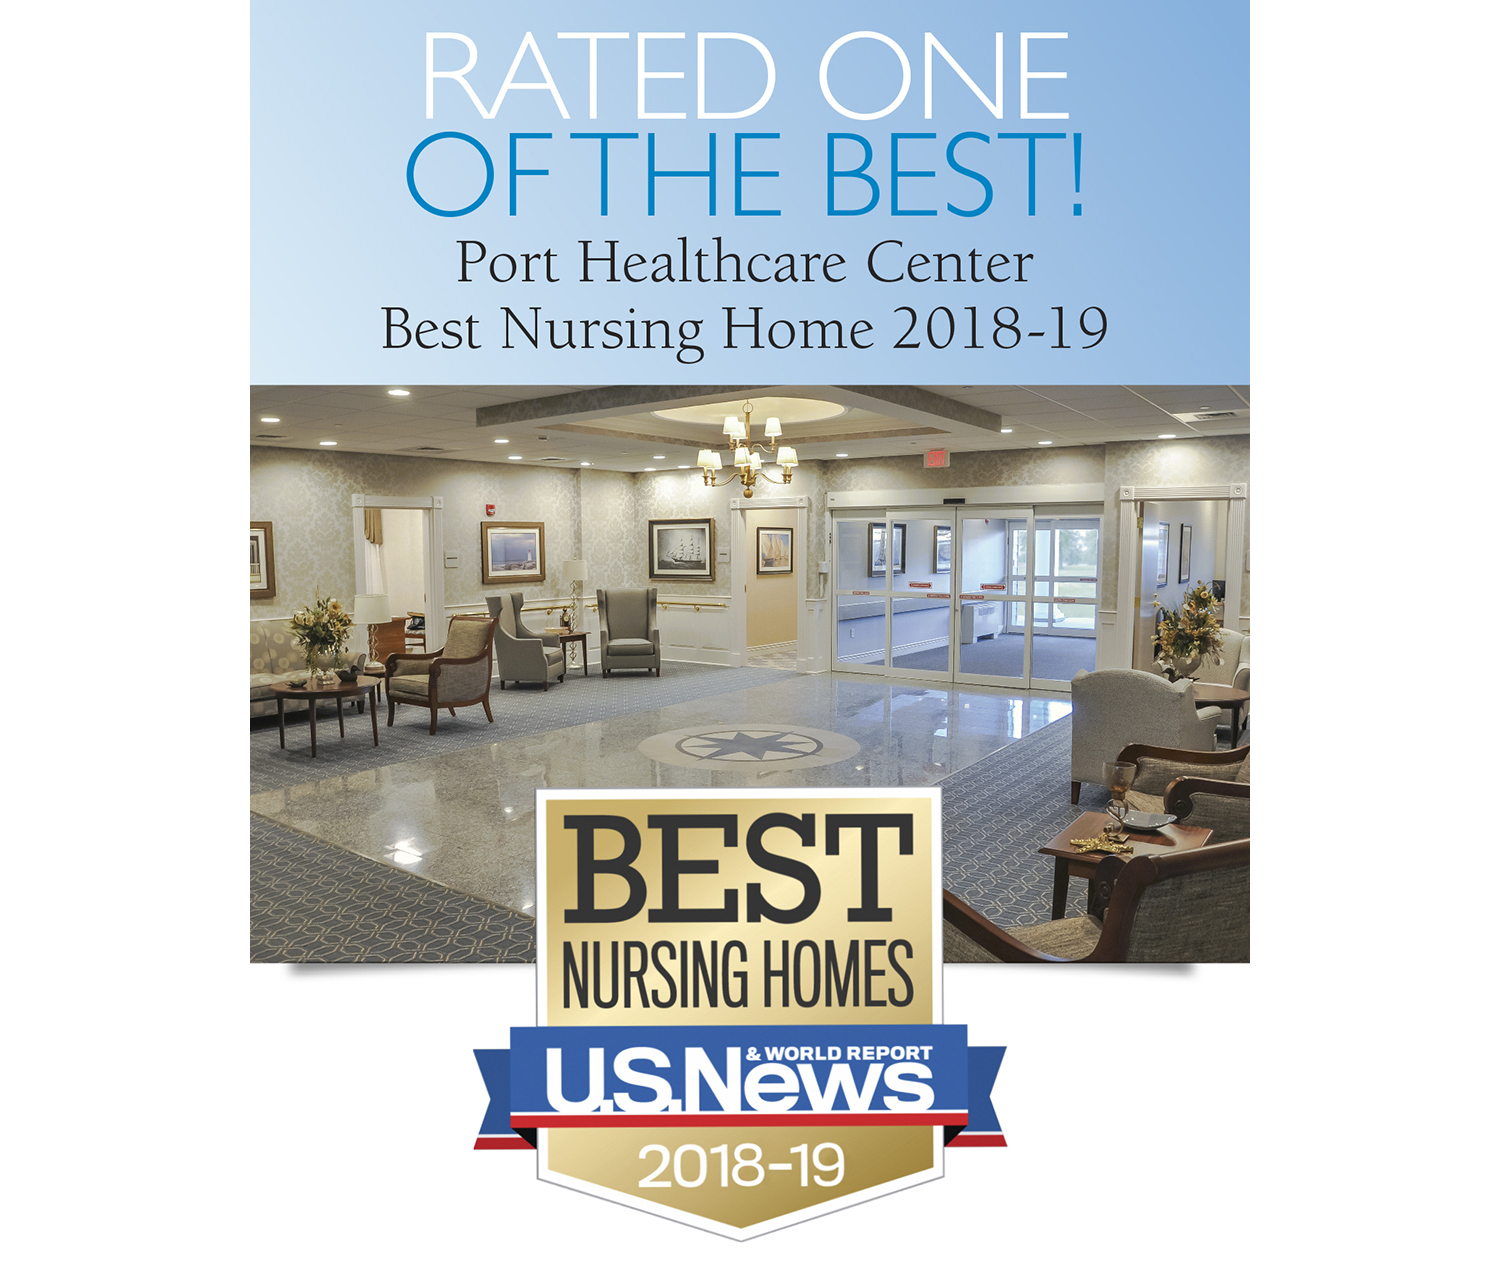 """Another Whittier best! Port Healthcare Center has been recognized as a """"Best Nursing Home"""" by U.S. News & World Report 2018-19"""